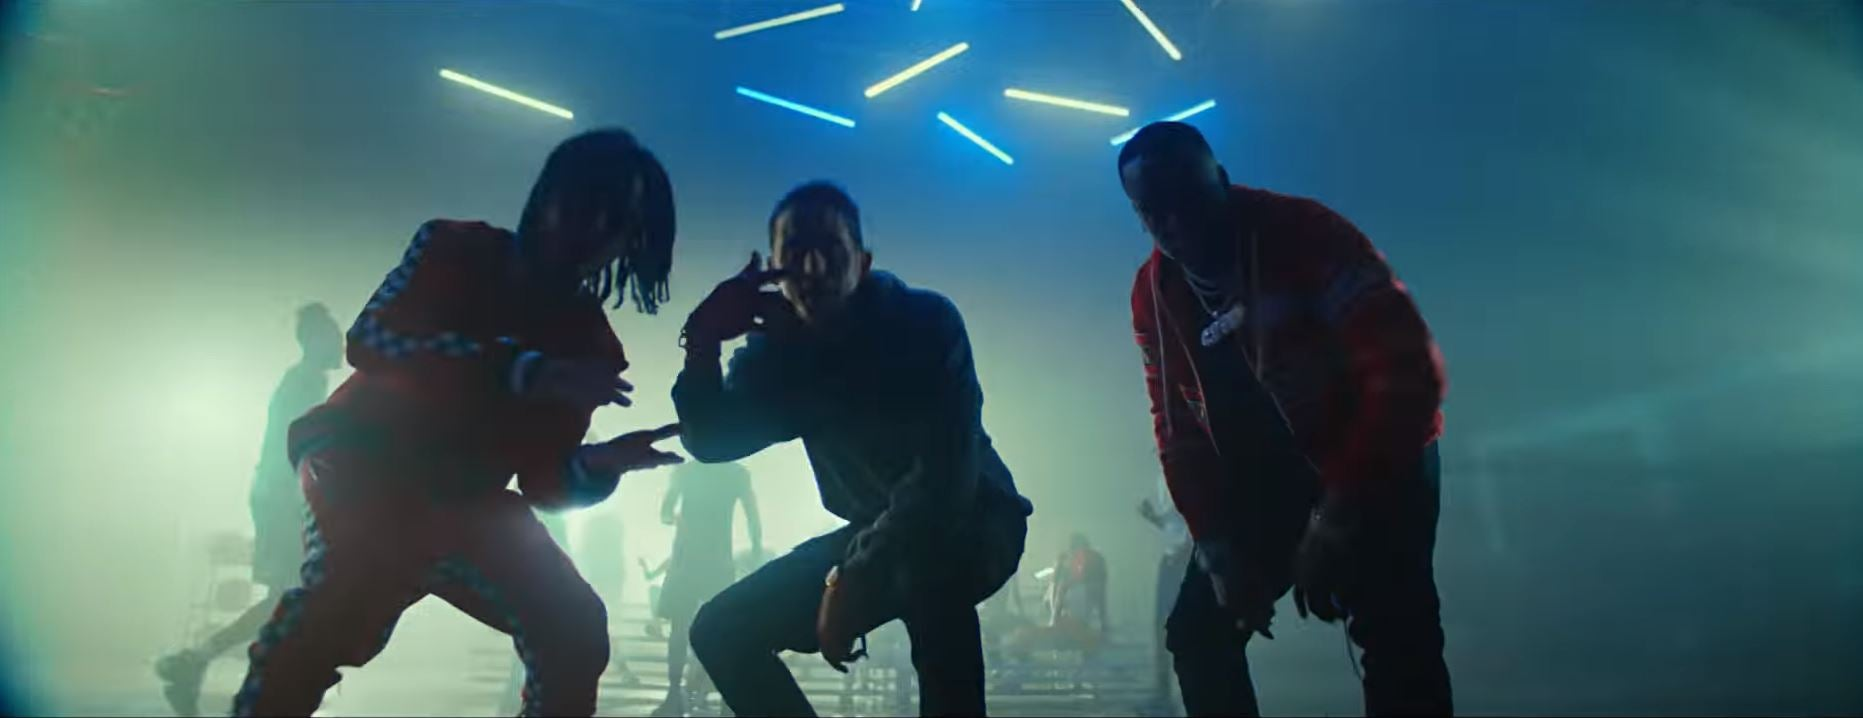 G-Eazy's New Video Has Arrived And It's 🔥🔥🔥